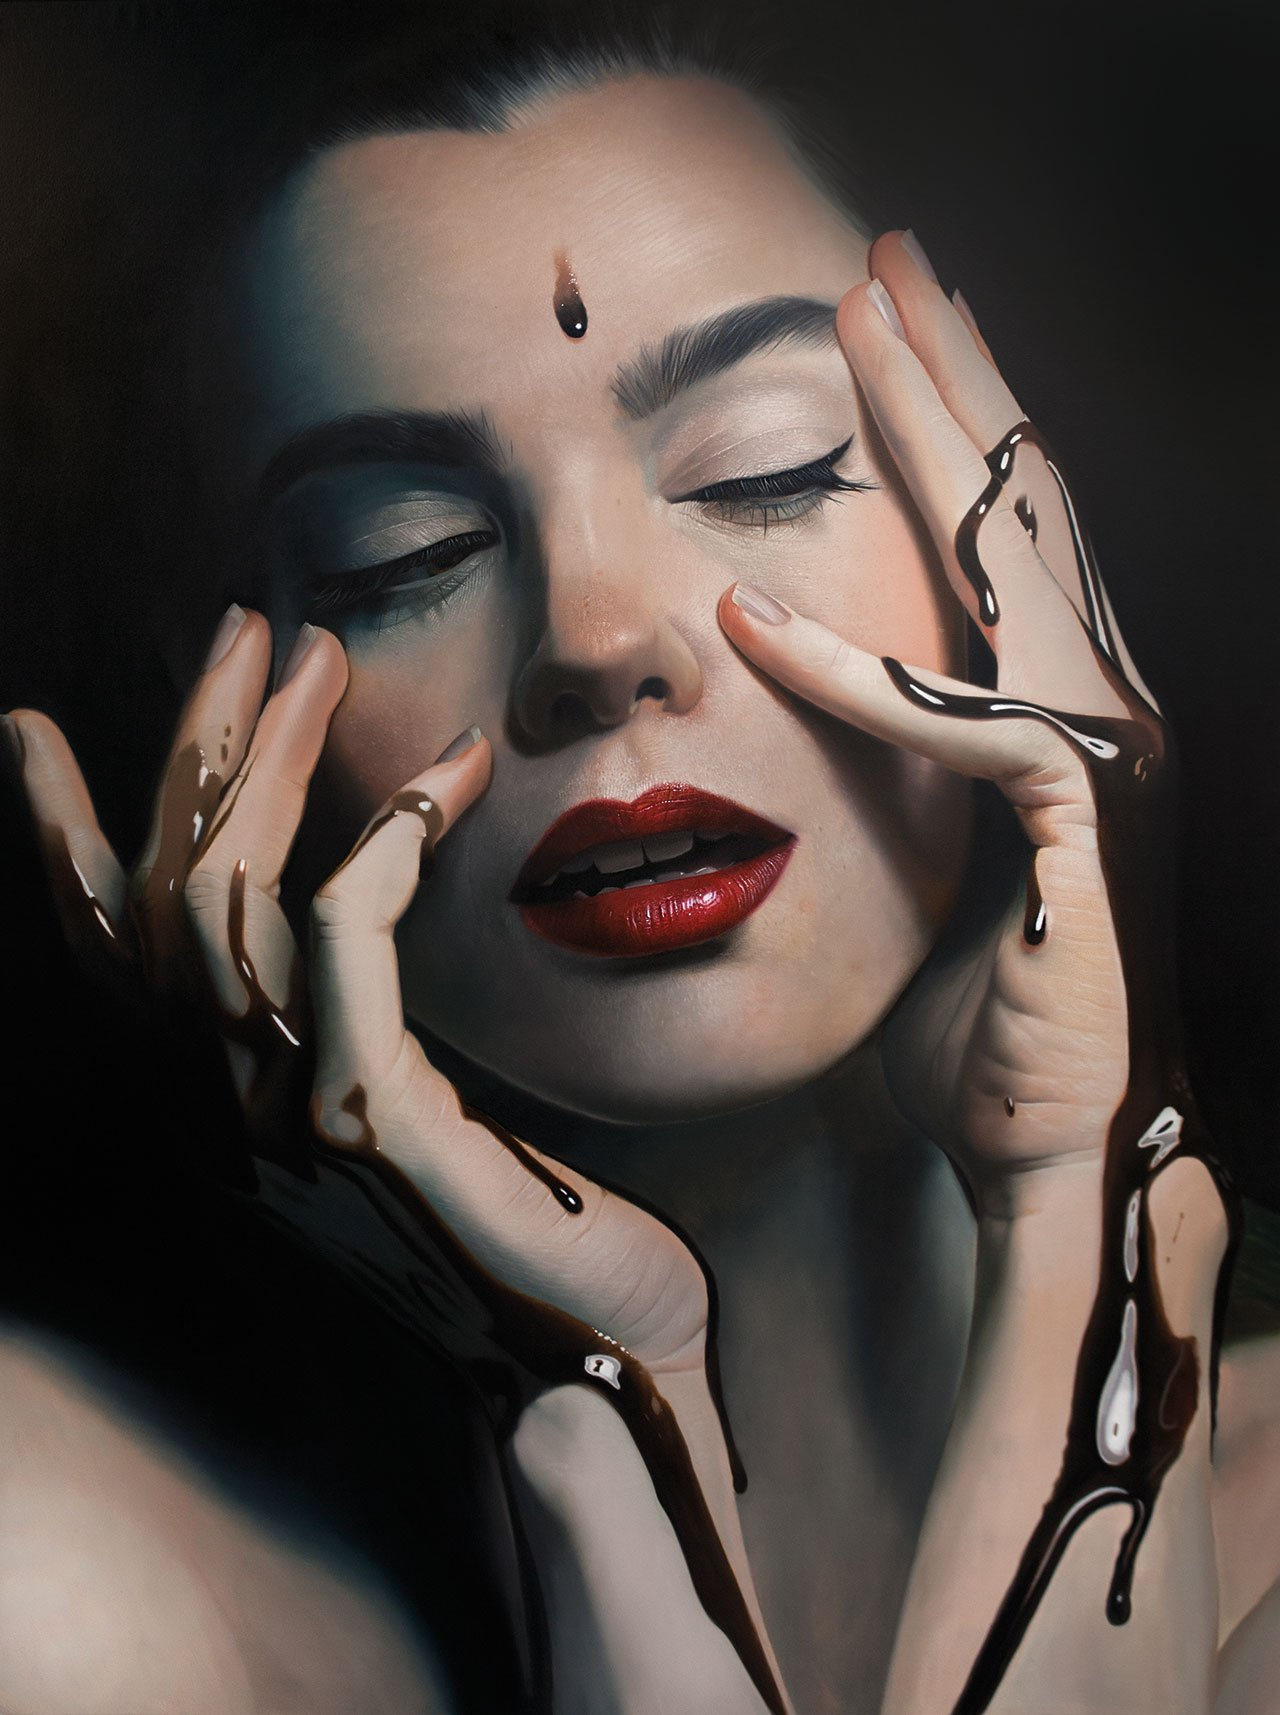 Mike Dargas,Fade to Black, 2016, Oil on canvas, 200x150cm.